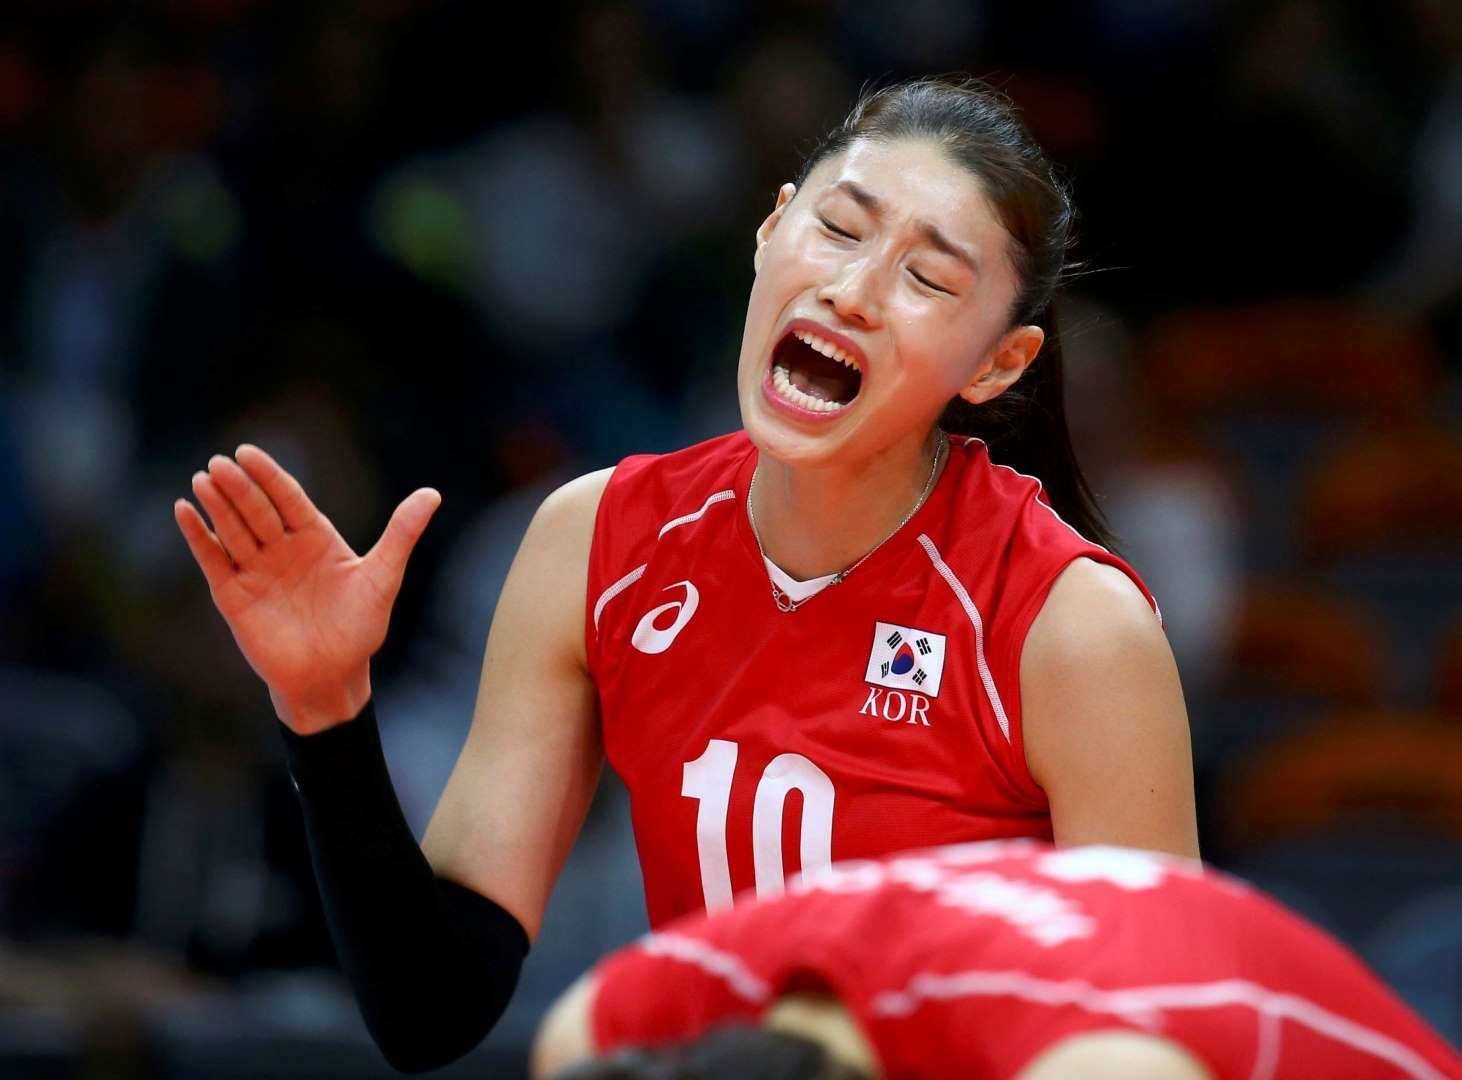 2016 Rio Olympics Highs And Lows From Day Five Rio Olympics 2016 Rio Olympics Female Volleyball Players